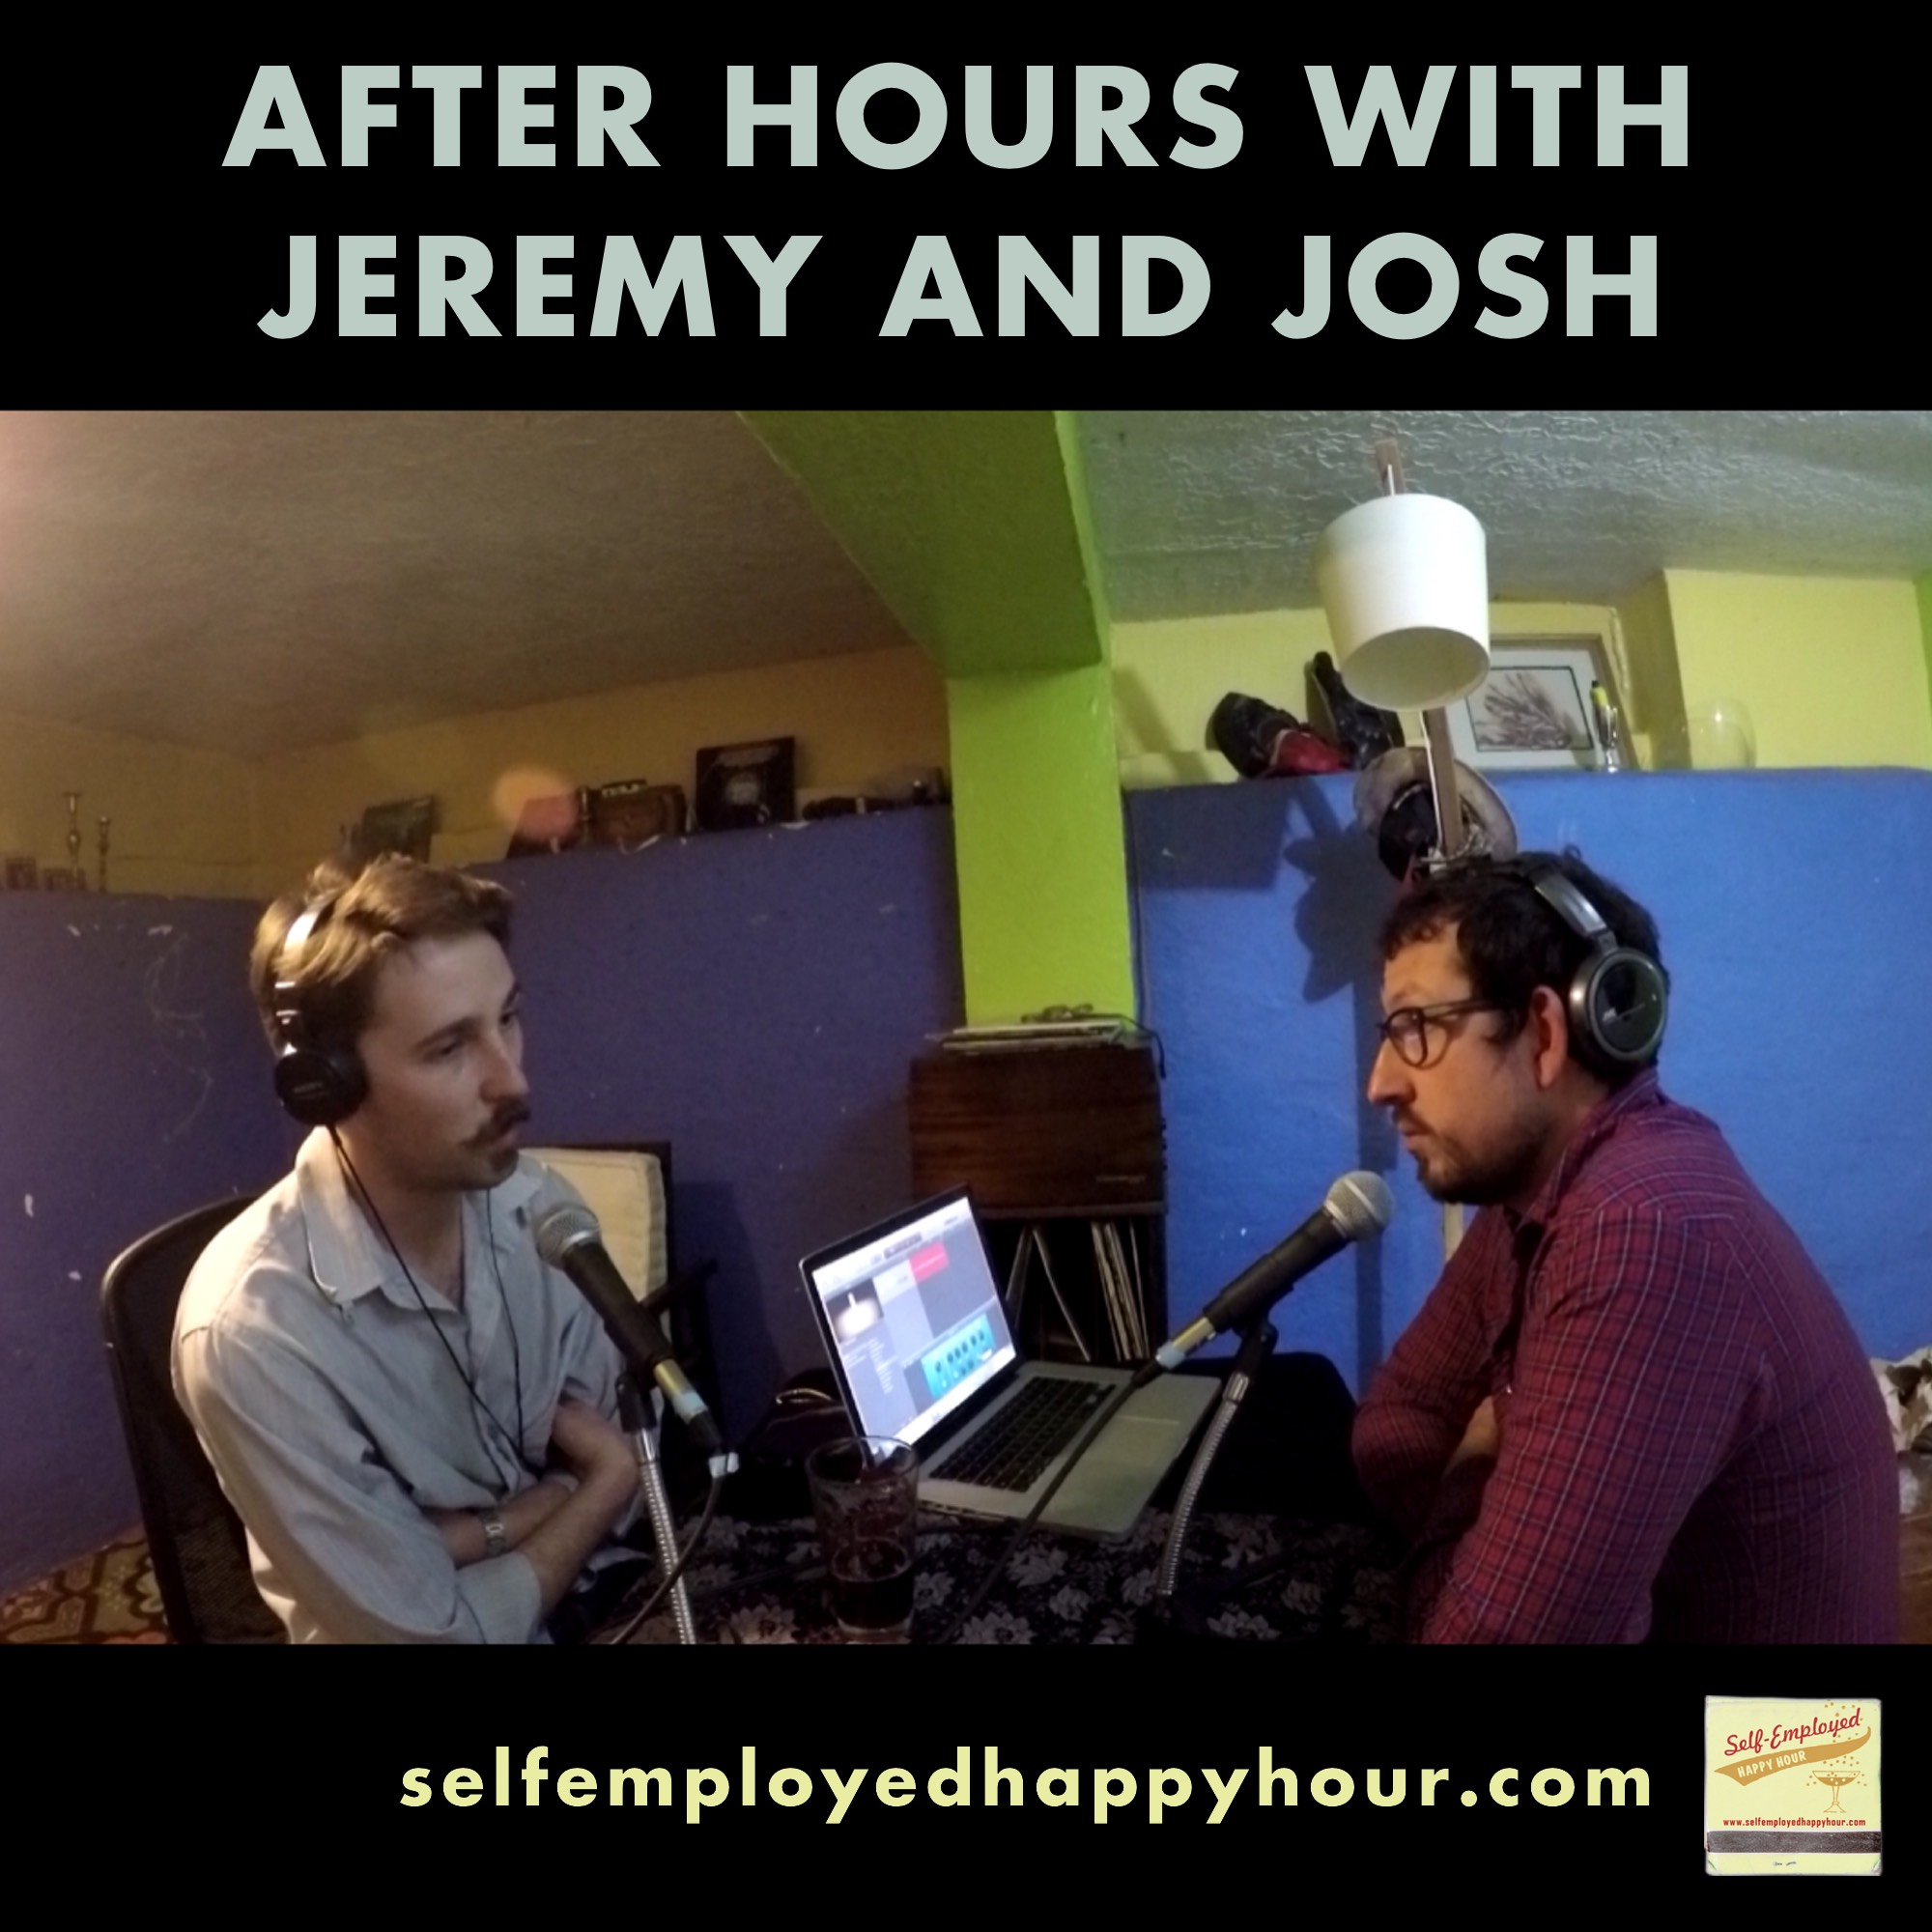 After Hours with Jeremy Kinter and Josh Stuyvesant